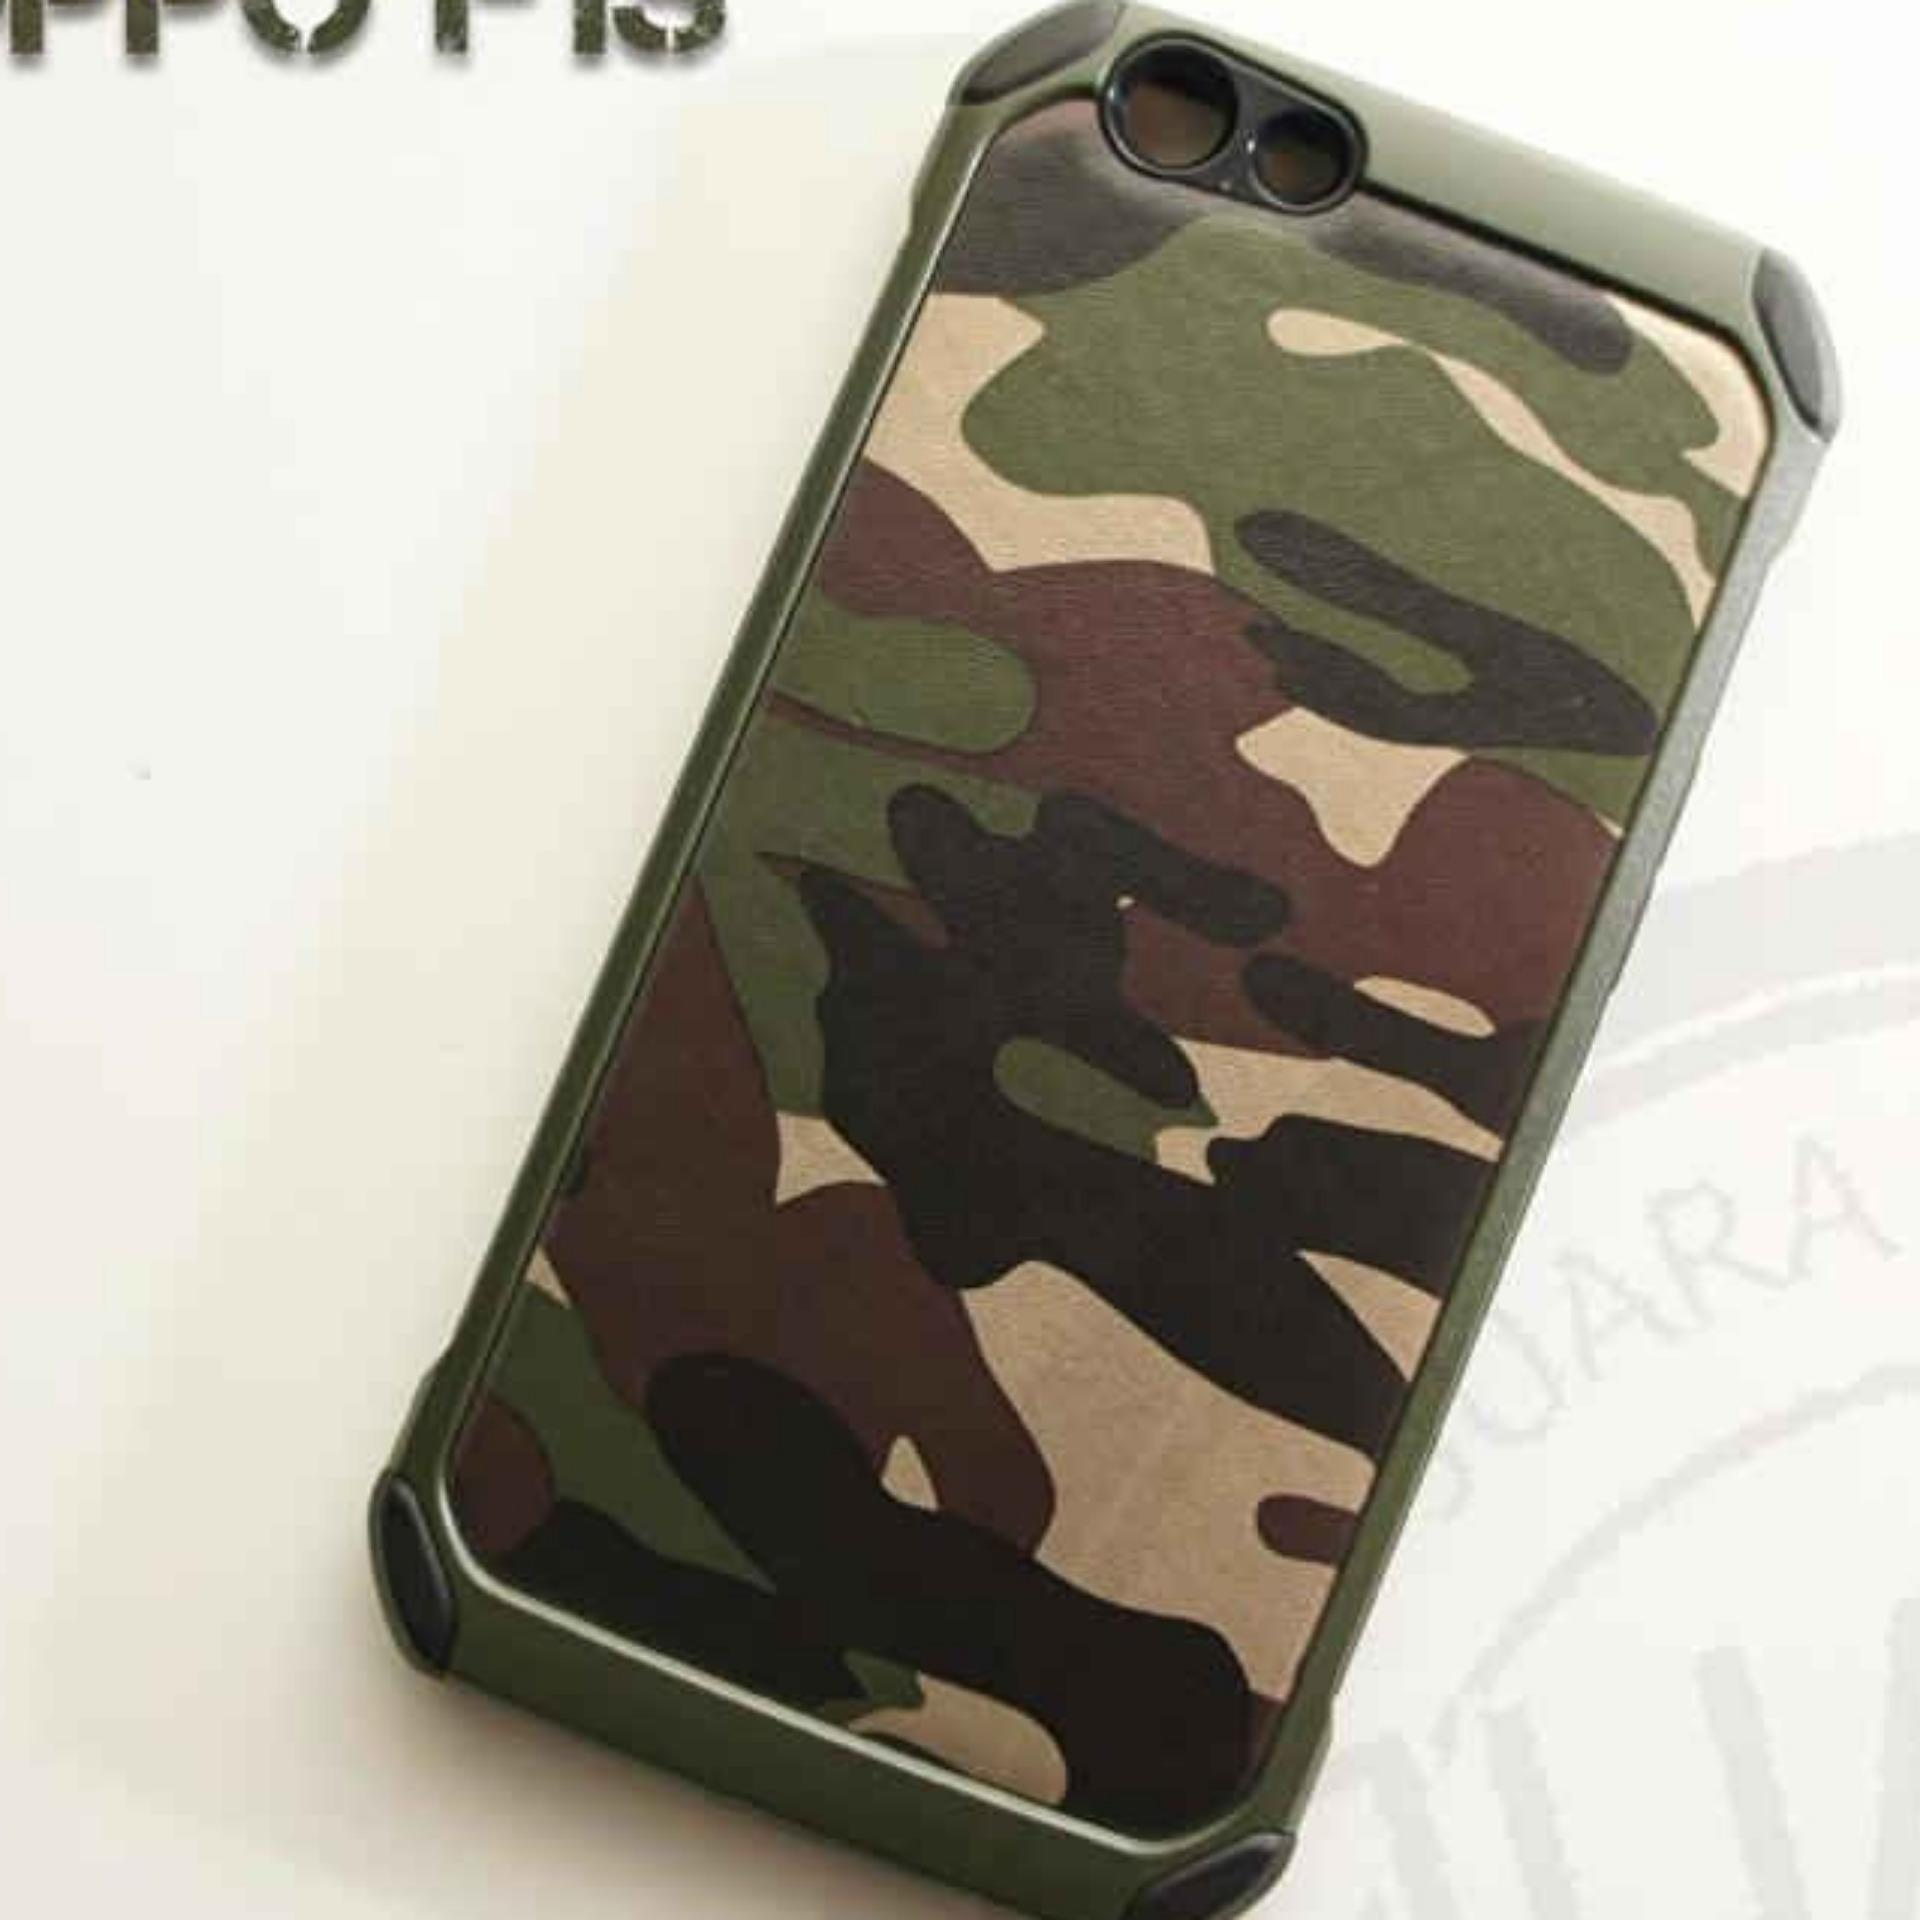 Harga Case Military Army High Protection For Oppo A59 Oppo F1S Army Hijau Seken